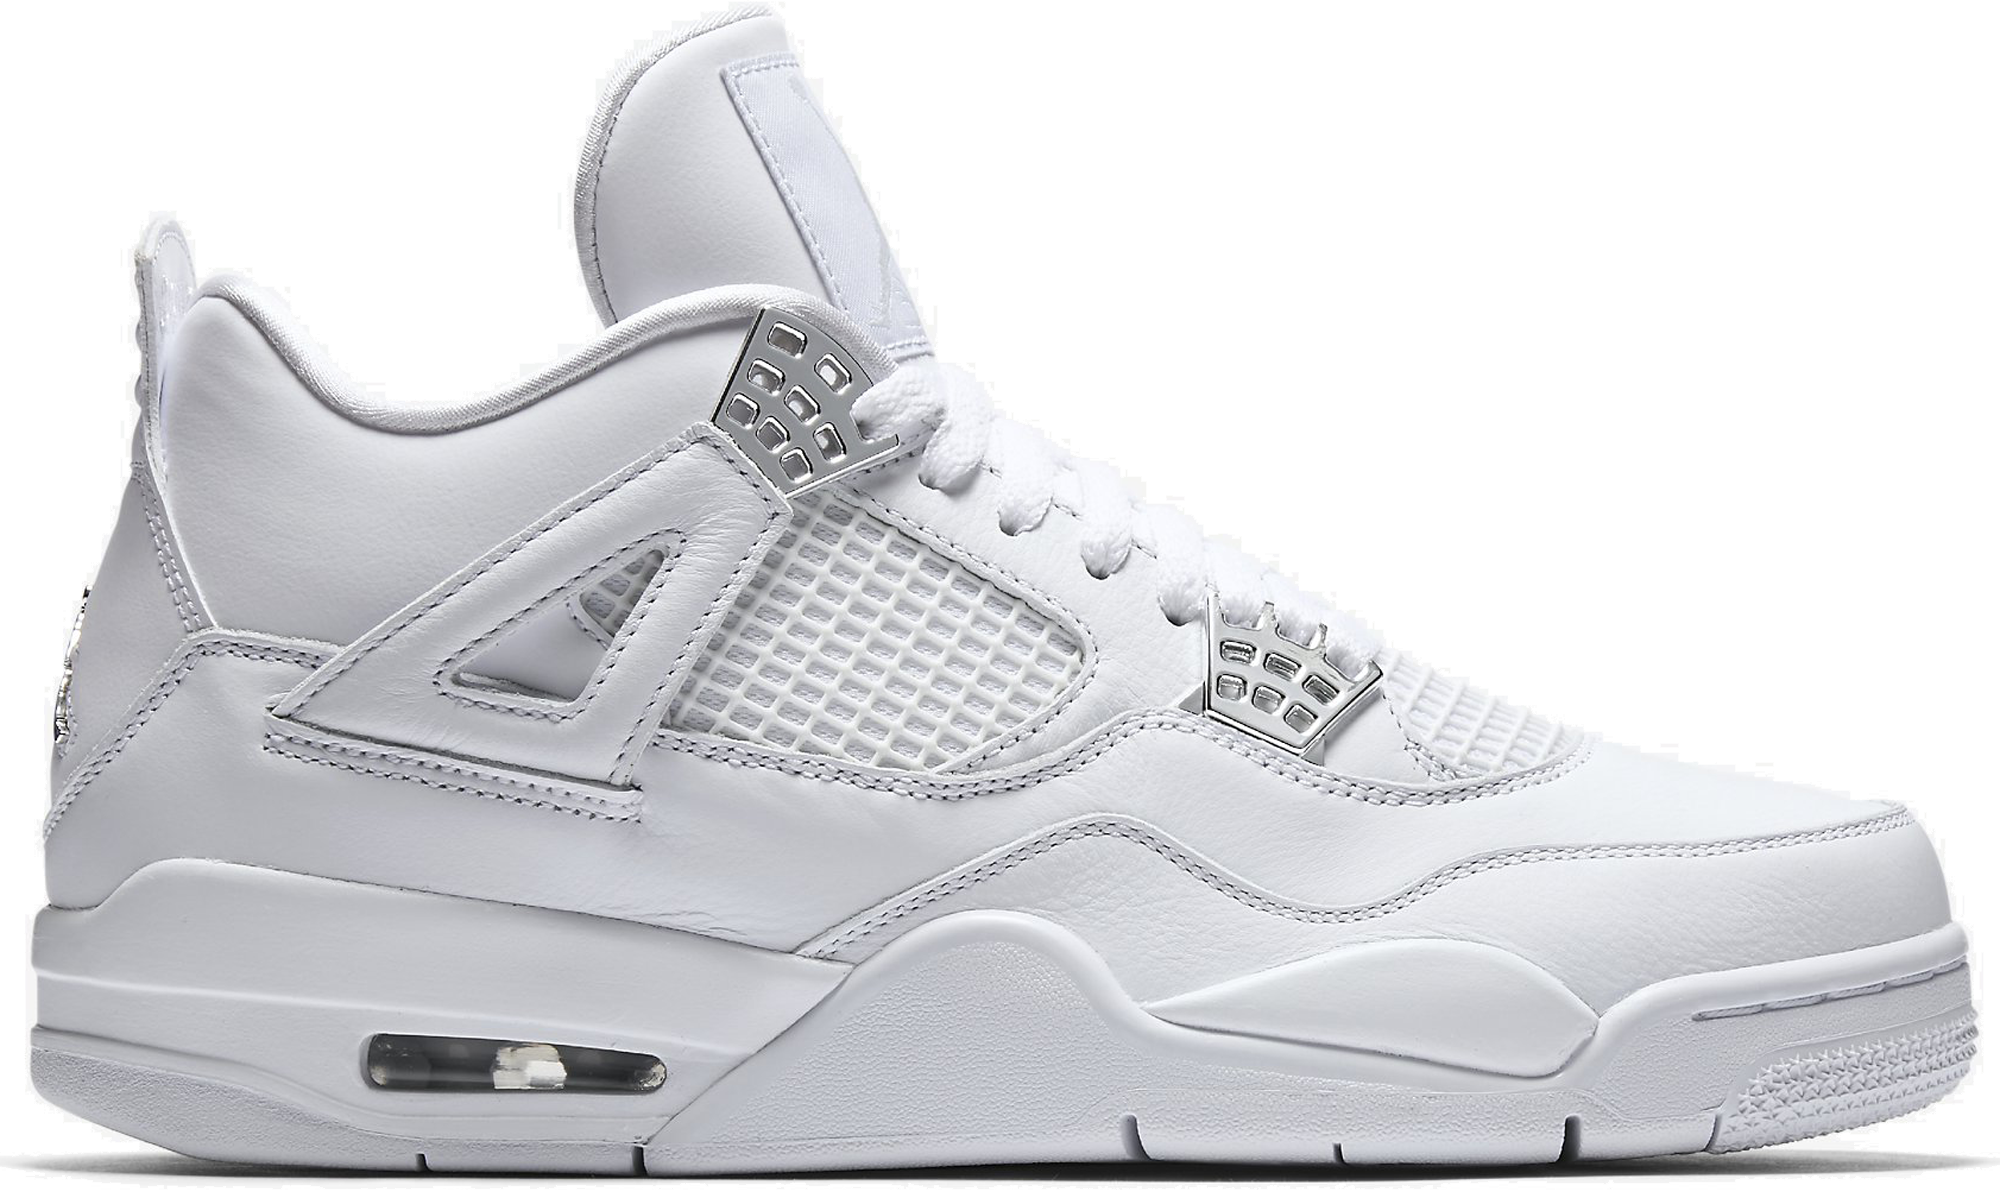 I just listed an Ask for the Jordan 4 Retro Pure Money (2017) on StockX 3b69d476a2dd